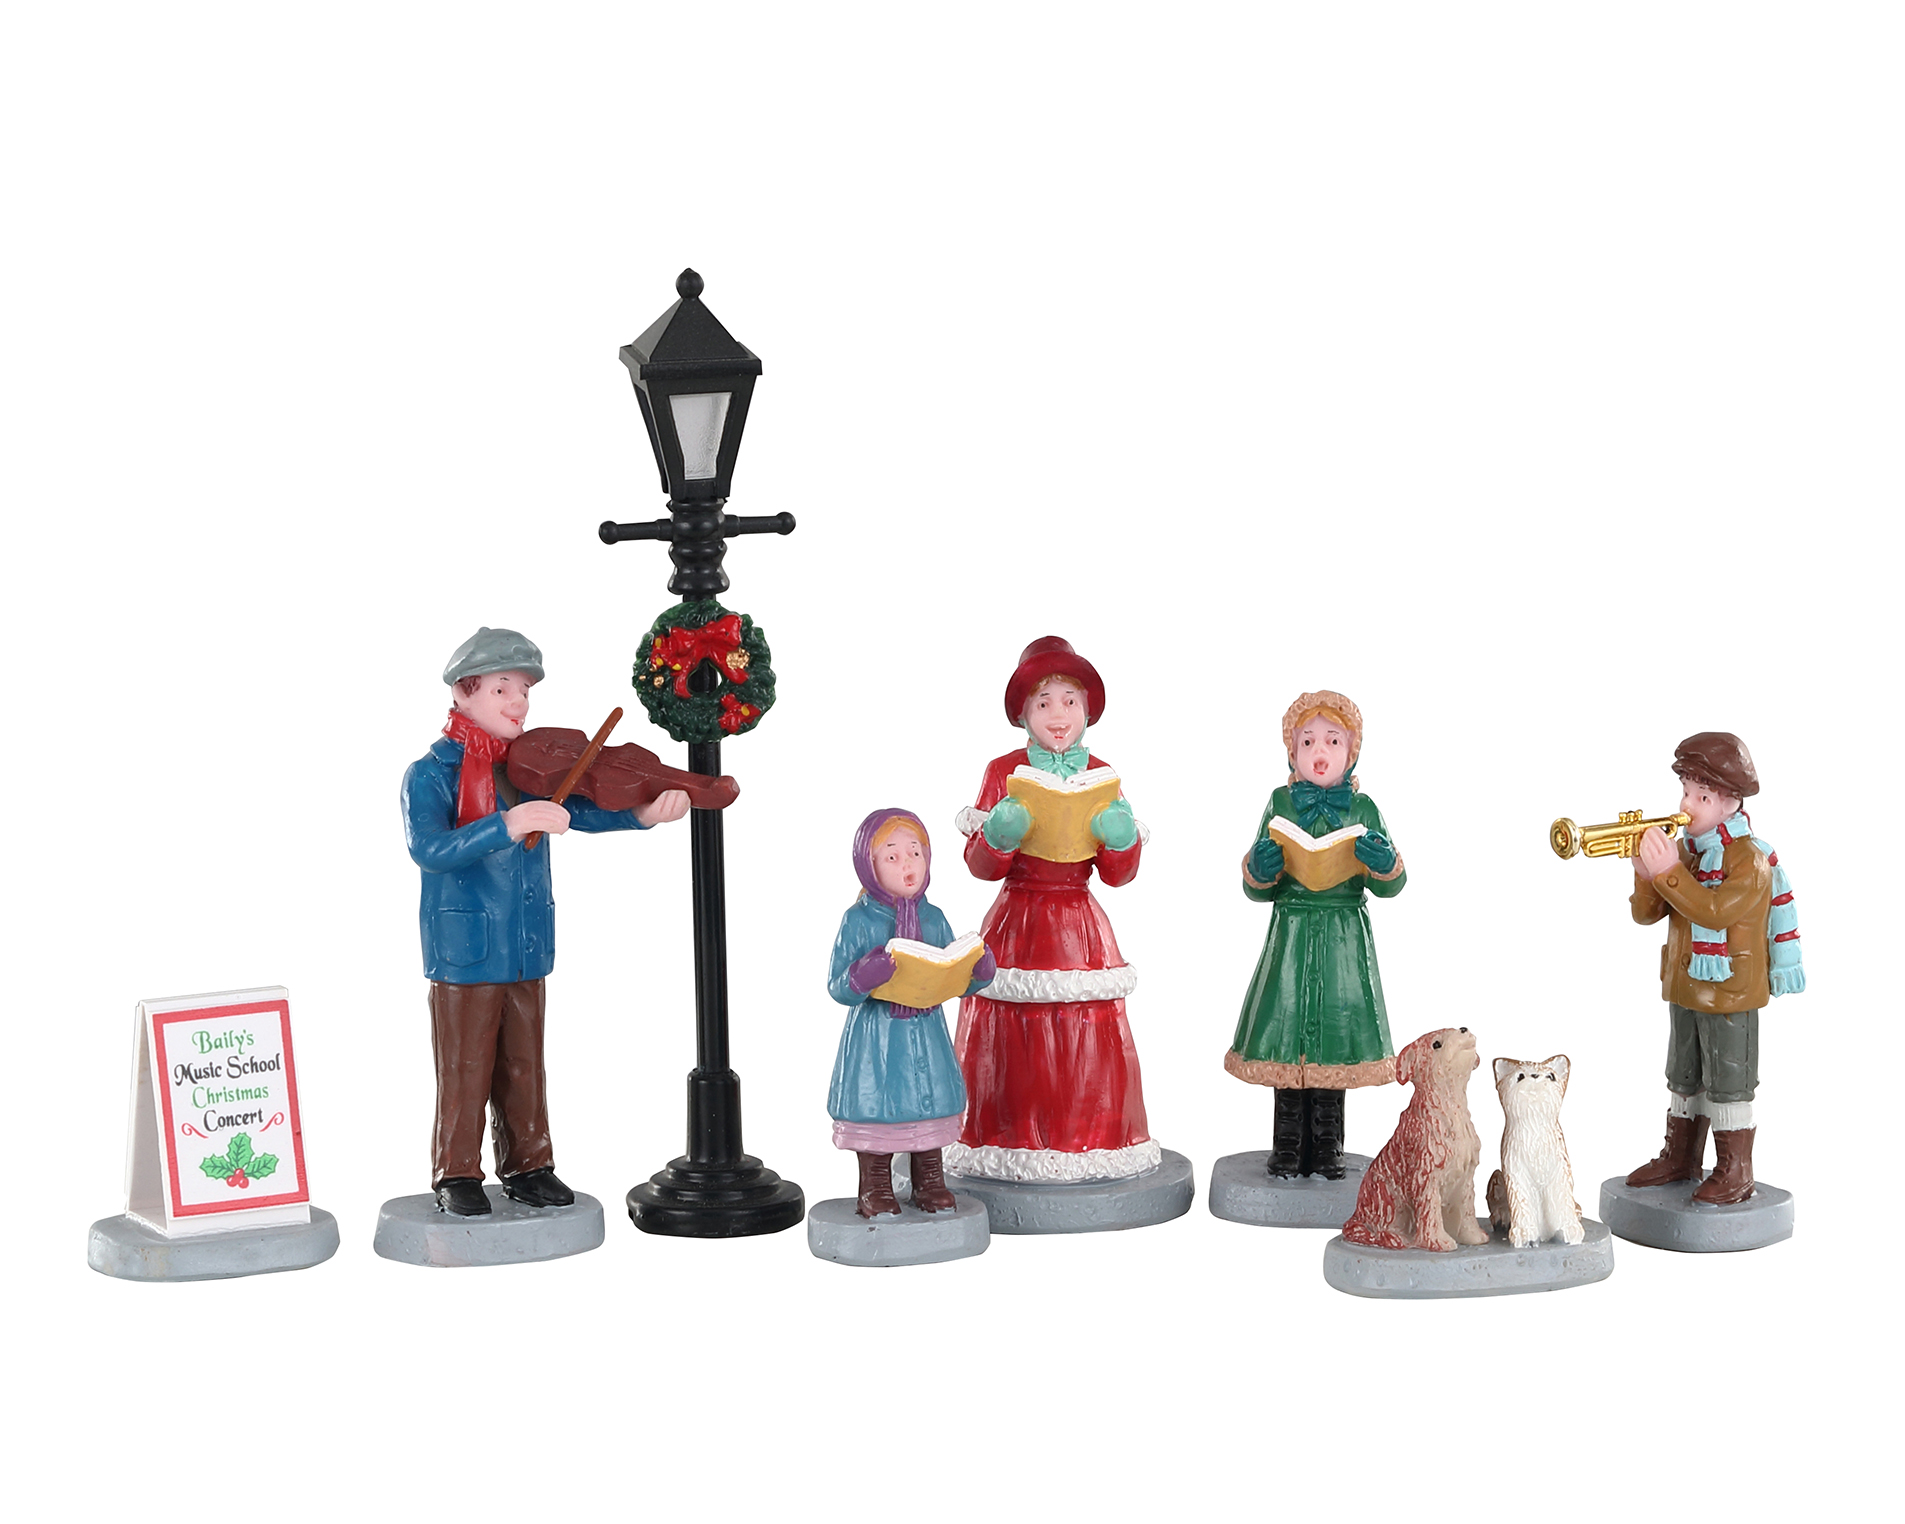 Lemax Village Collection Baily's Music School Carolers Set of 8 # 02949